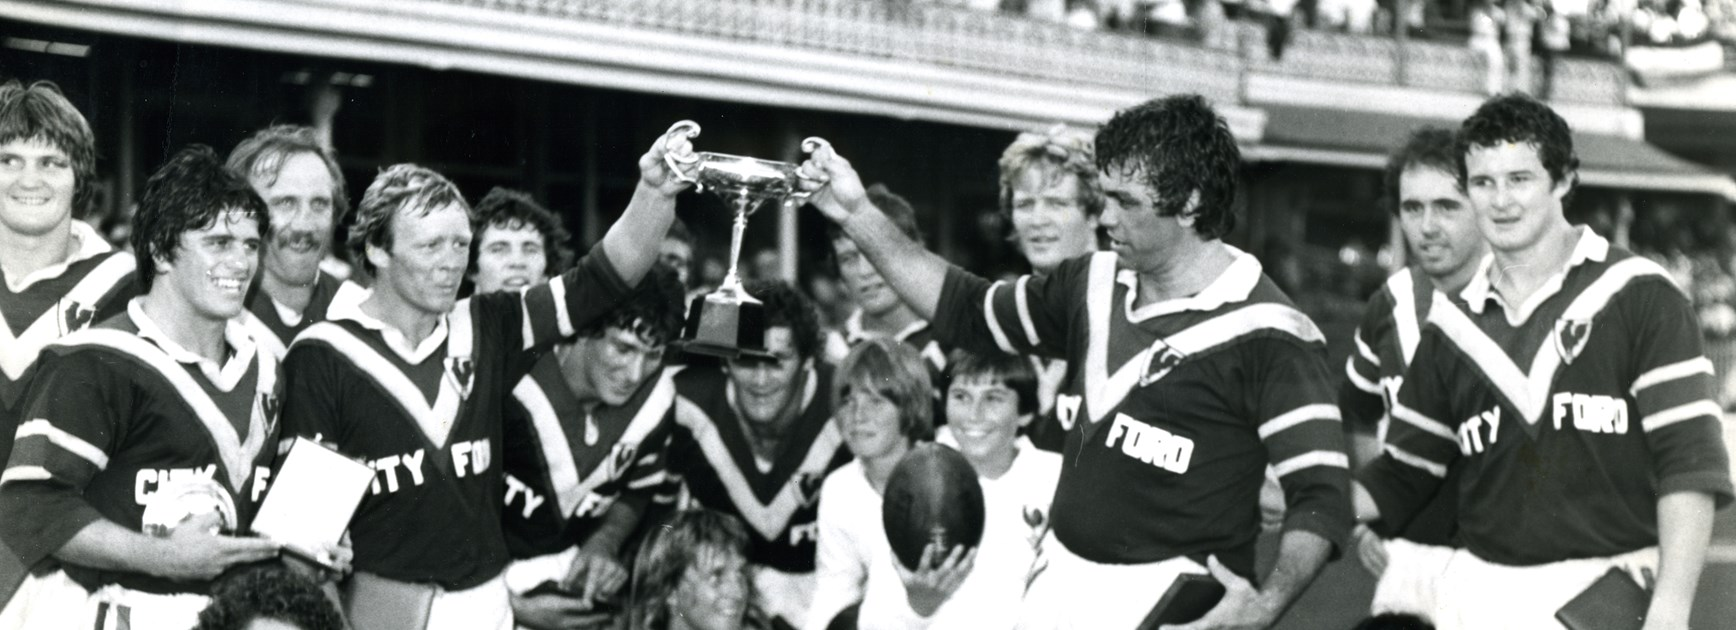 Beetson and fellow Immortal Bob Fulton hold the Wills Cup up after the Roosters win in the 1977 Pres-season final.